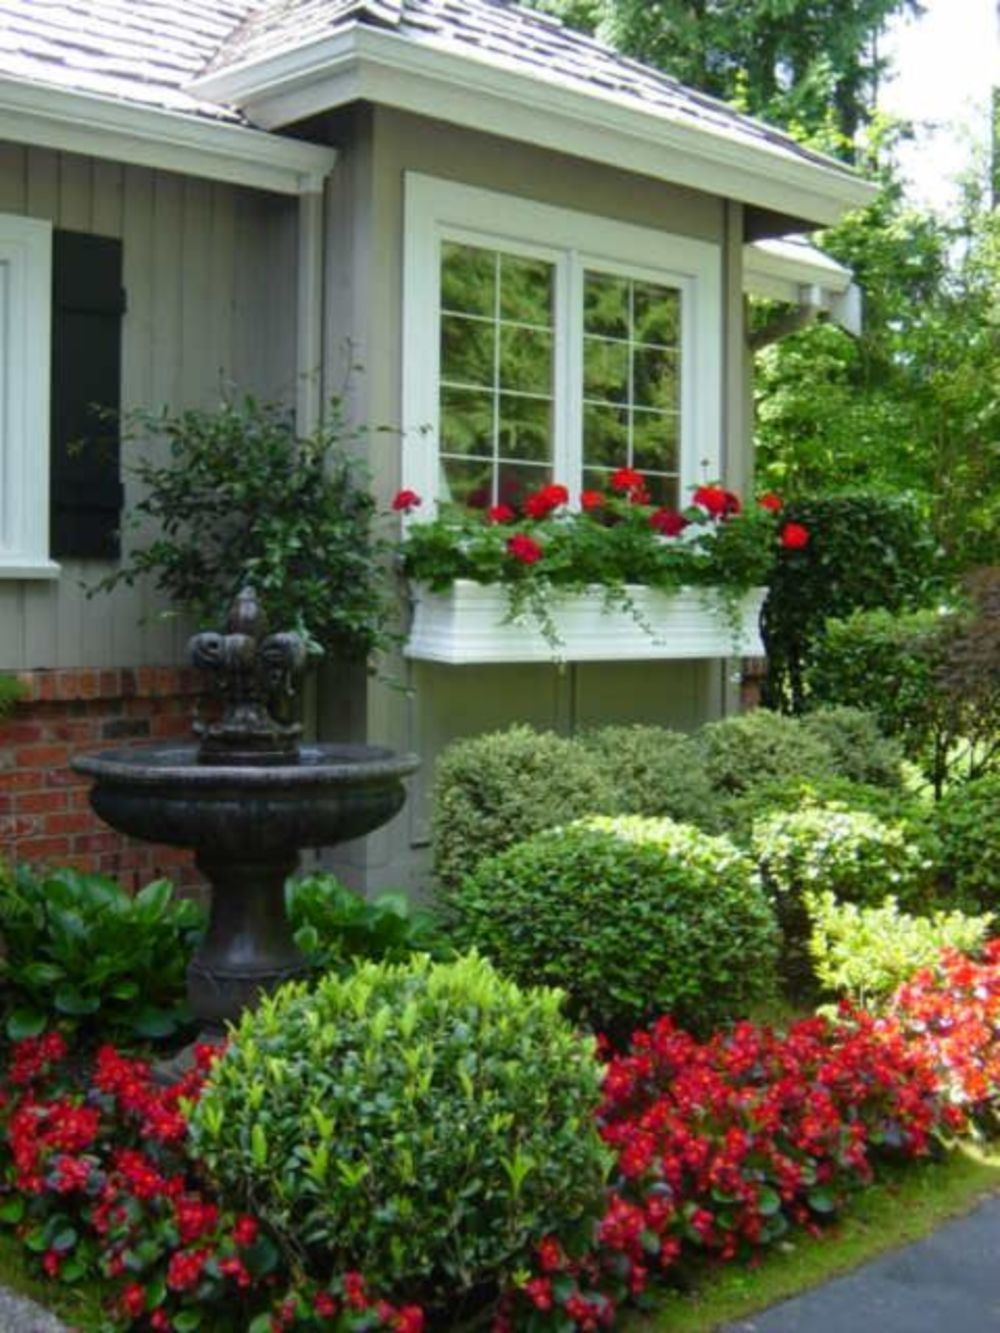 Flower Beds In Front Of House Archives   Page 4 Of 10   Champ Gardens · Backyard  IdeasGarden ...